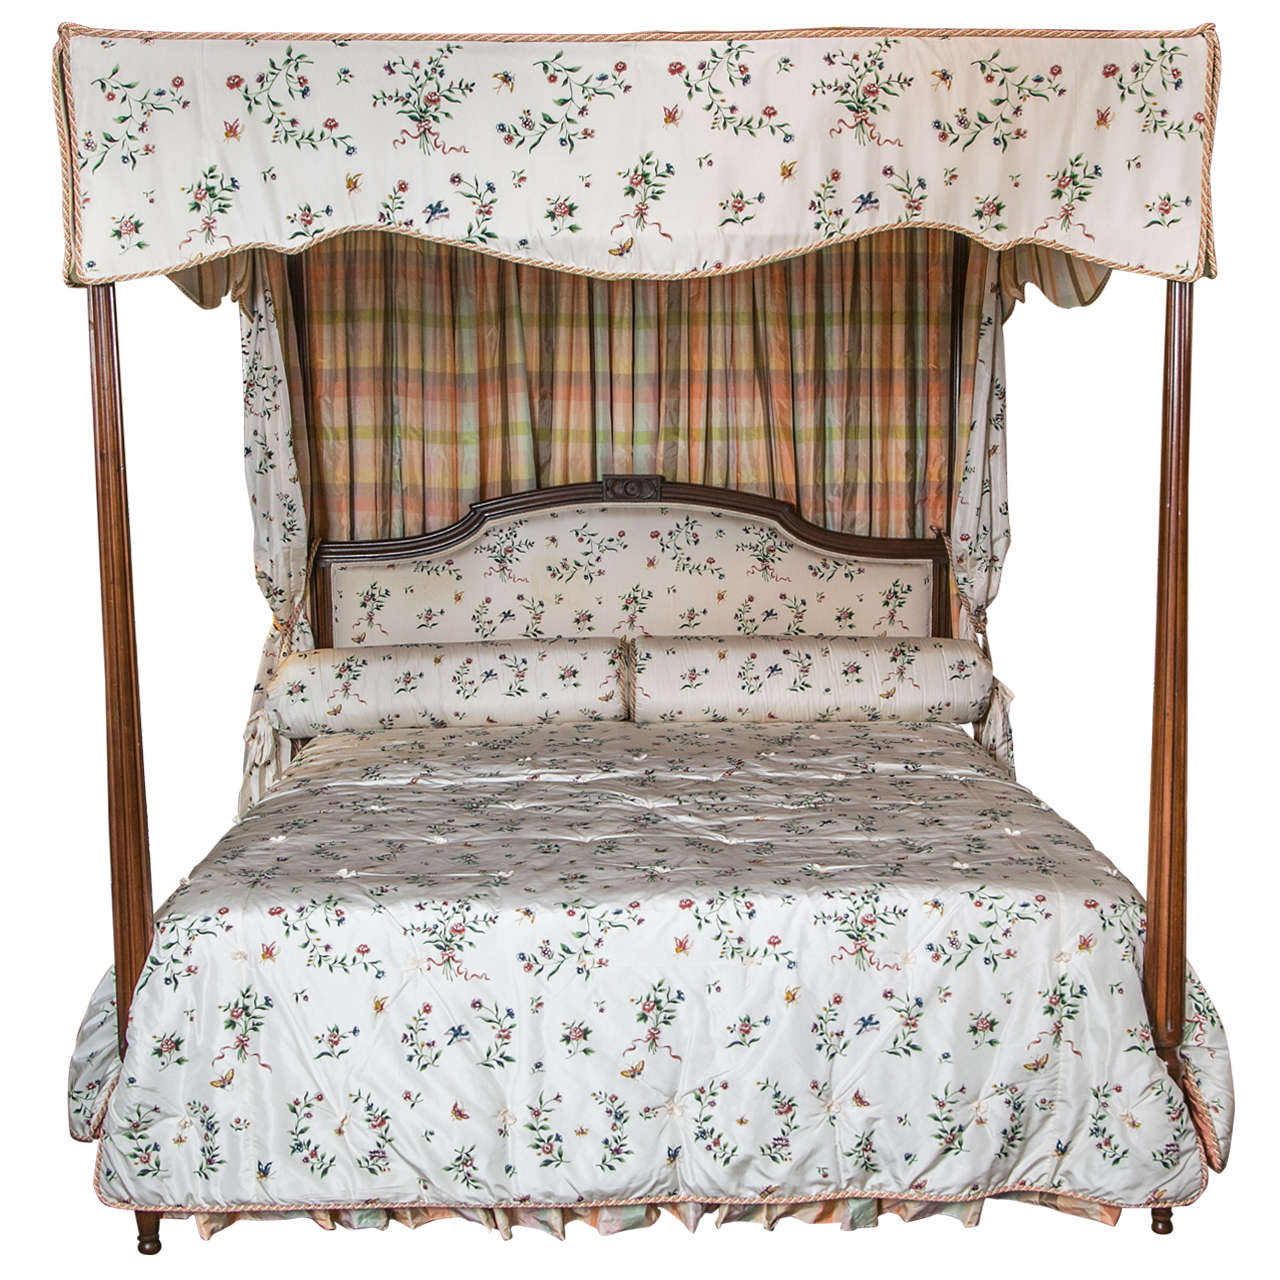 4 Poster Canopy Bed